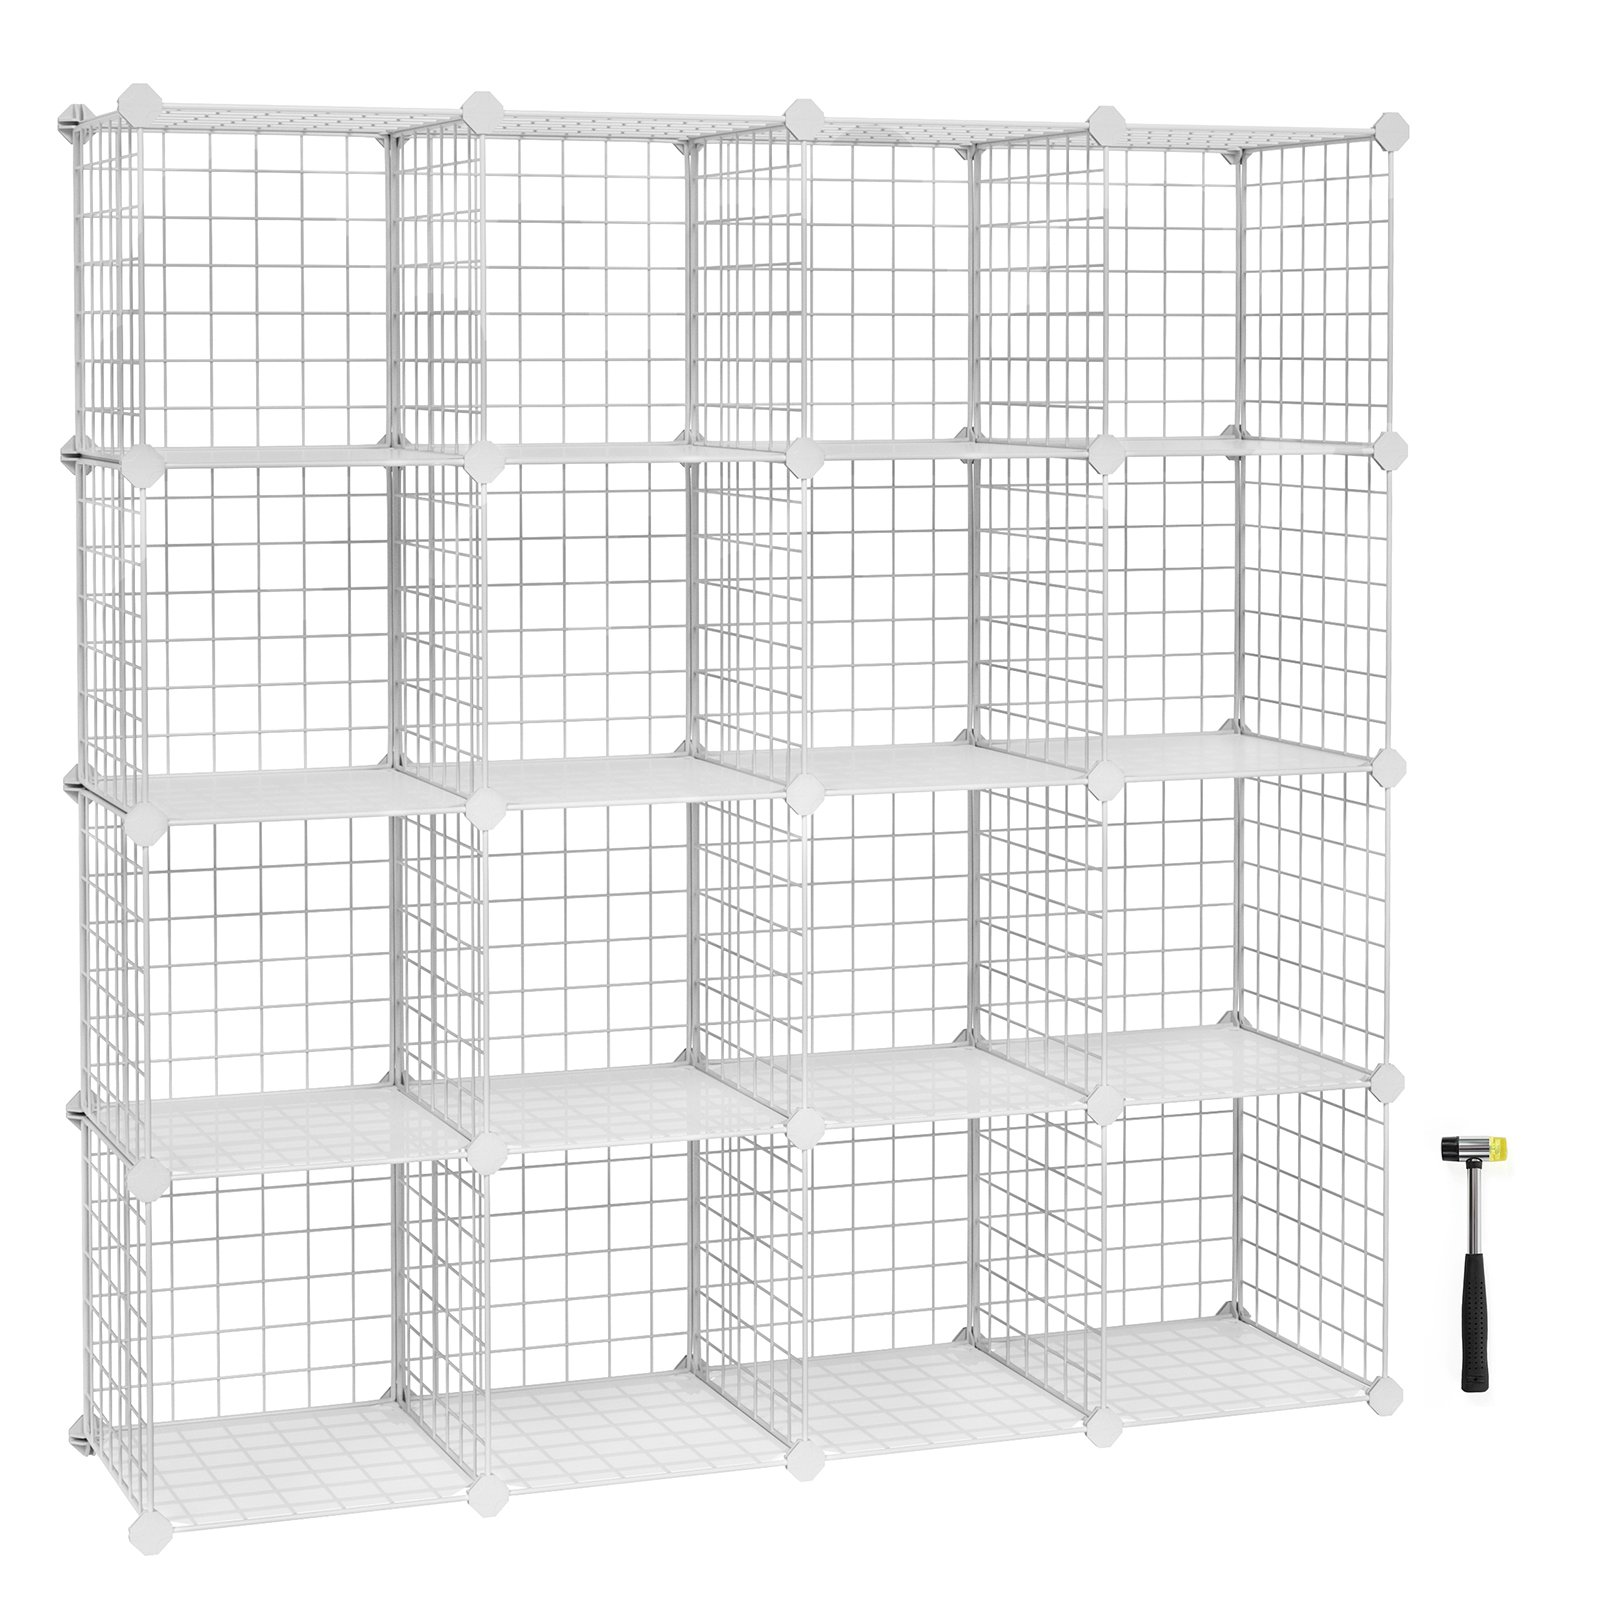 SONGMICS Metal Wire Storage Cube Organizer, Modular Shoe Rack, DIY Closet Cabinet and Shelving Grids, Bookcase, Includes Rubber Mallet, White,16-Cube ULPI44W